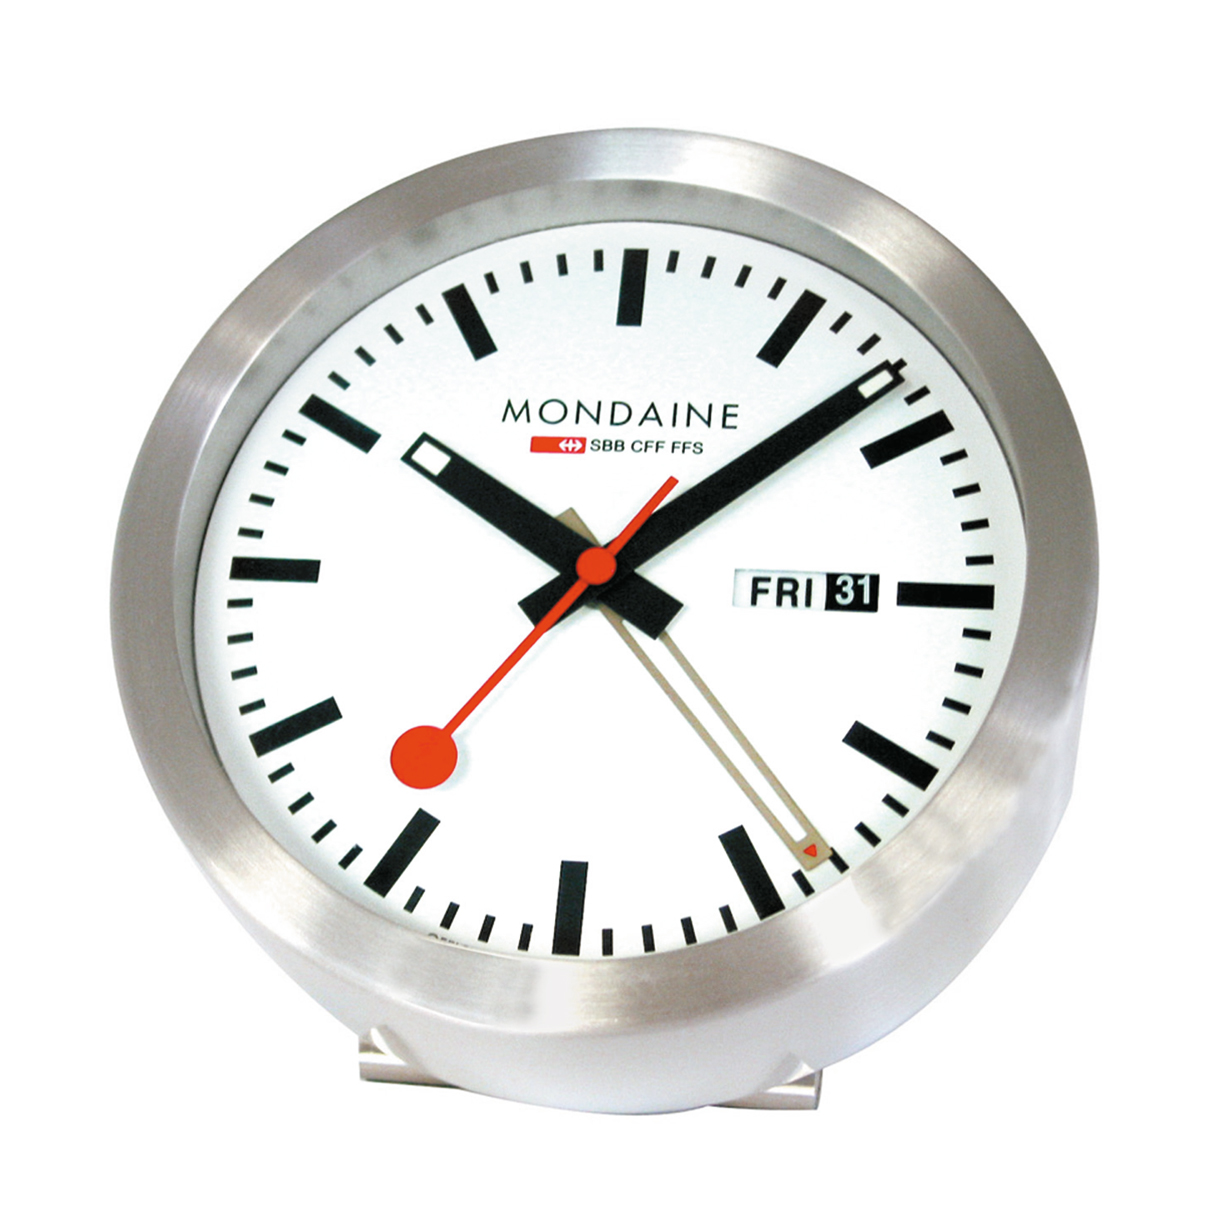 Mondaine clocks crown jewellery - Mondaine wall clocks ...